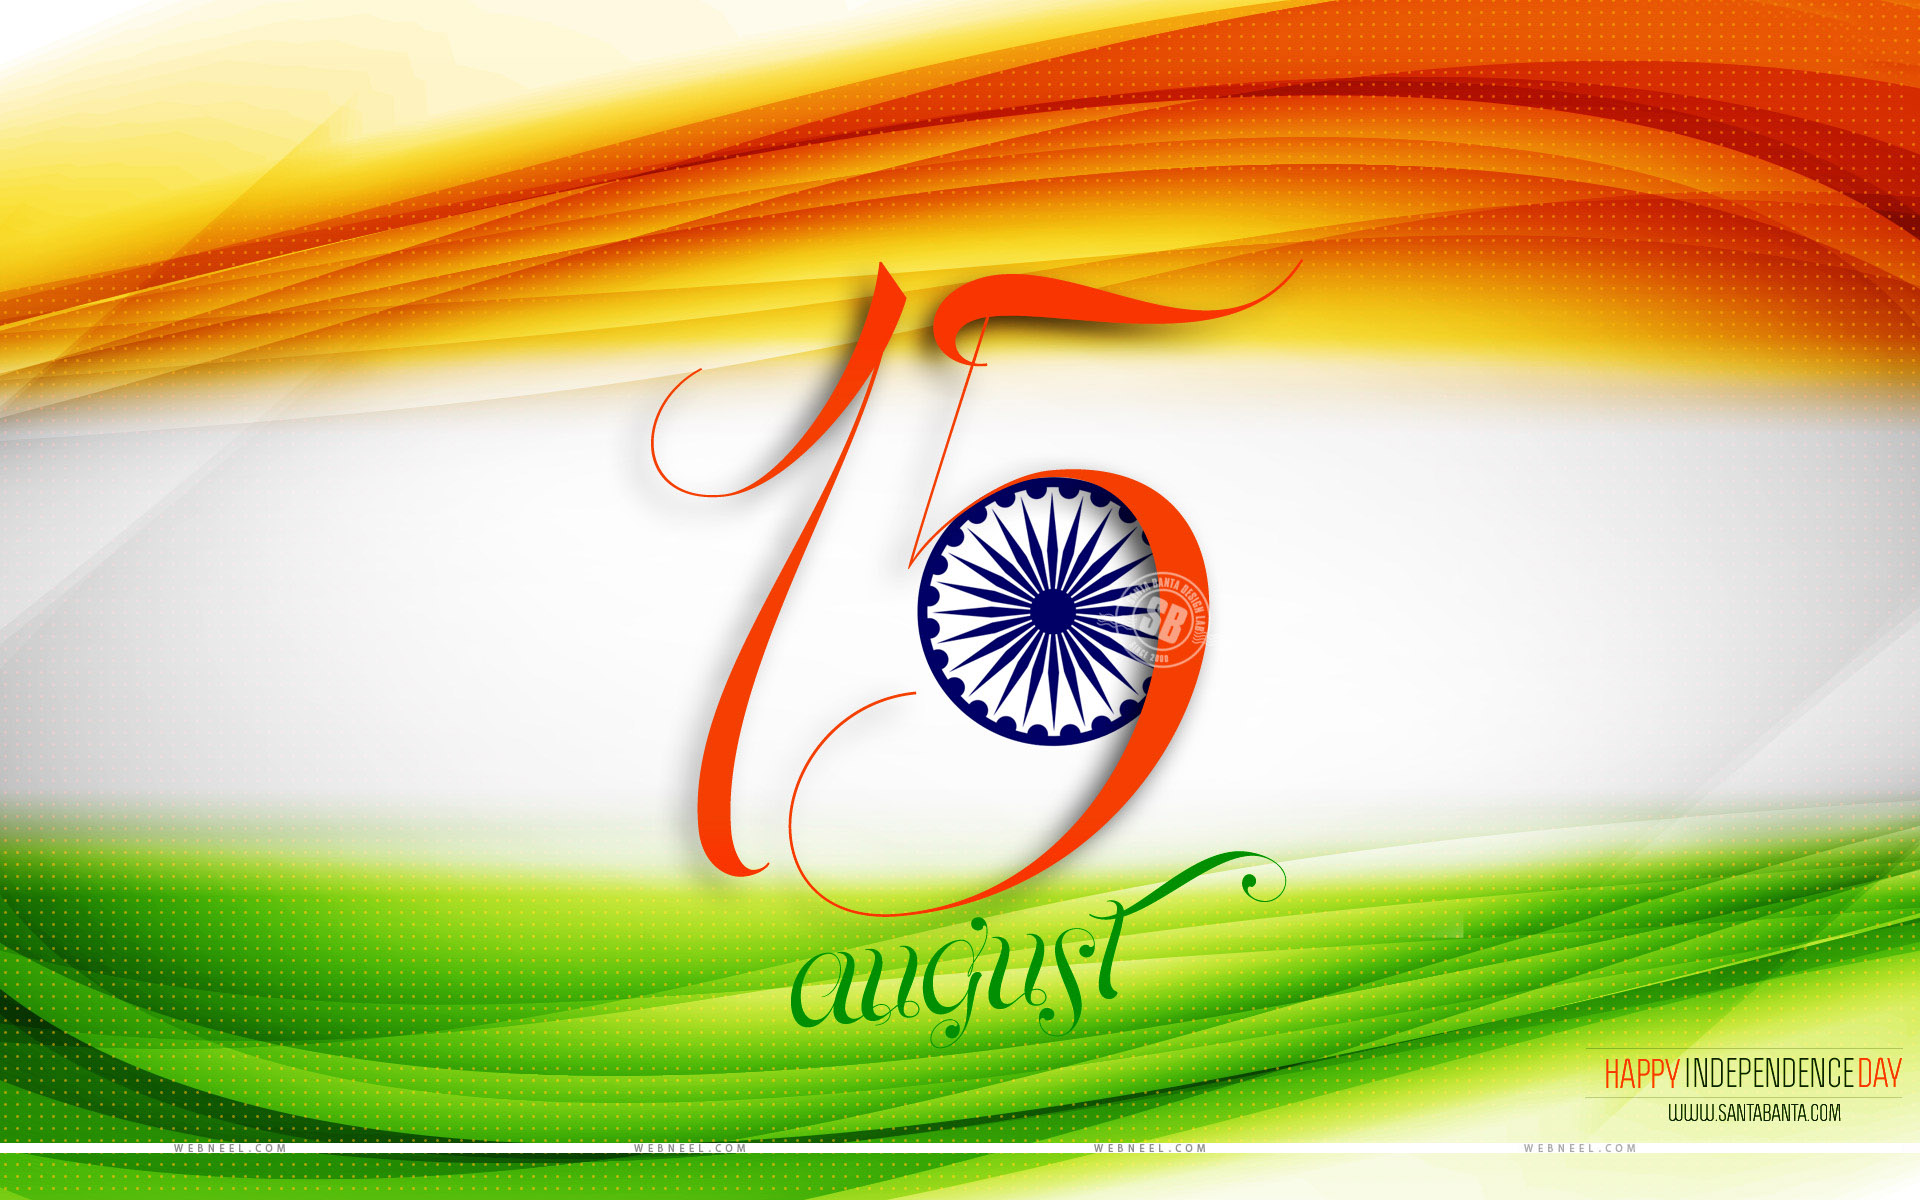 india independence day wallpaper View All View All 1920x1200